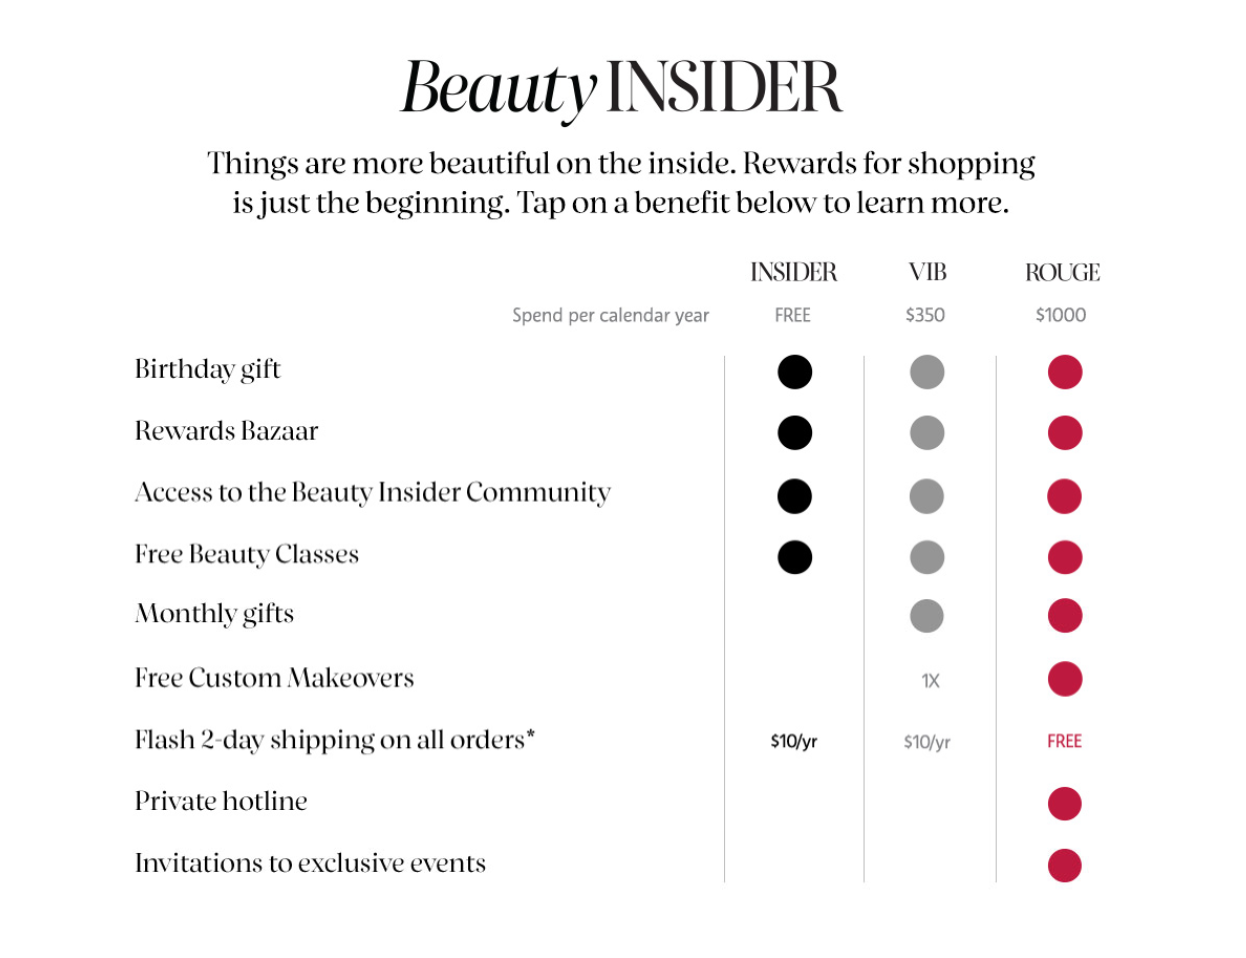 Sephora VIB loyalty program example, with loyalty tiers